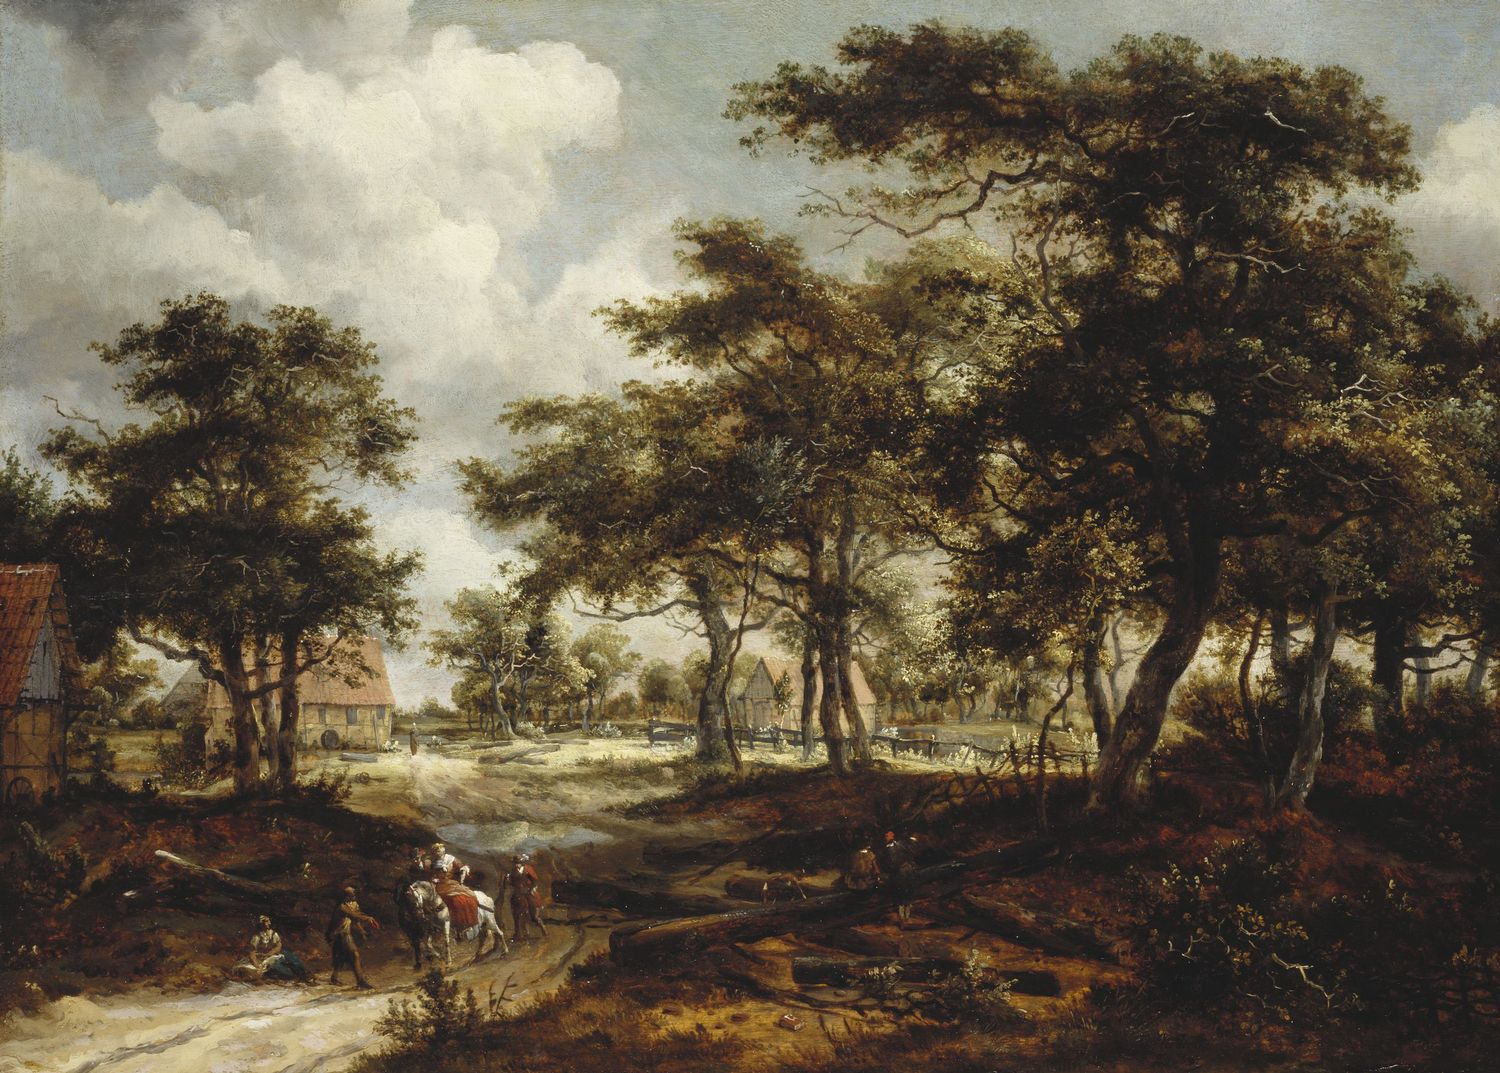 Meindert_Hobbema_-_Wooded_Landscape_with_Travellers_and_Beggars_on_a_Road.jpg